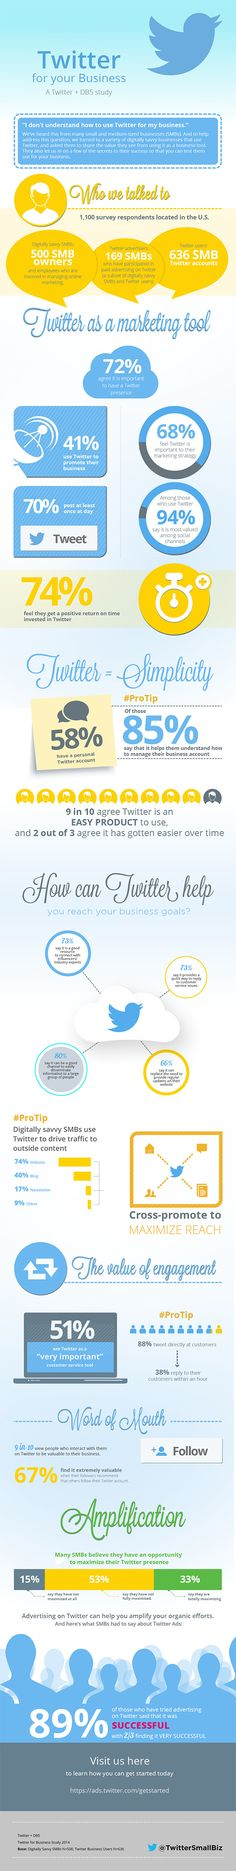 25 Astonishing Stats that Show Why #Twitter MUST be Part of Your Marketing Strategy